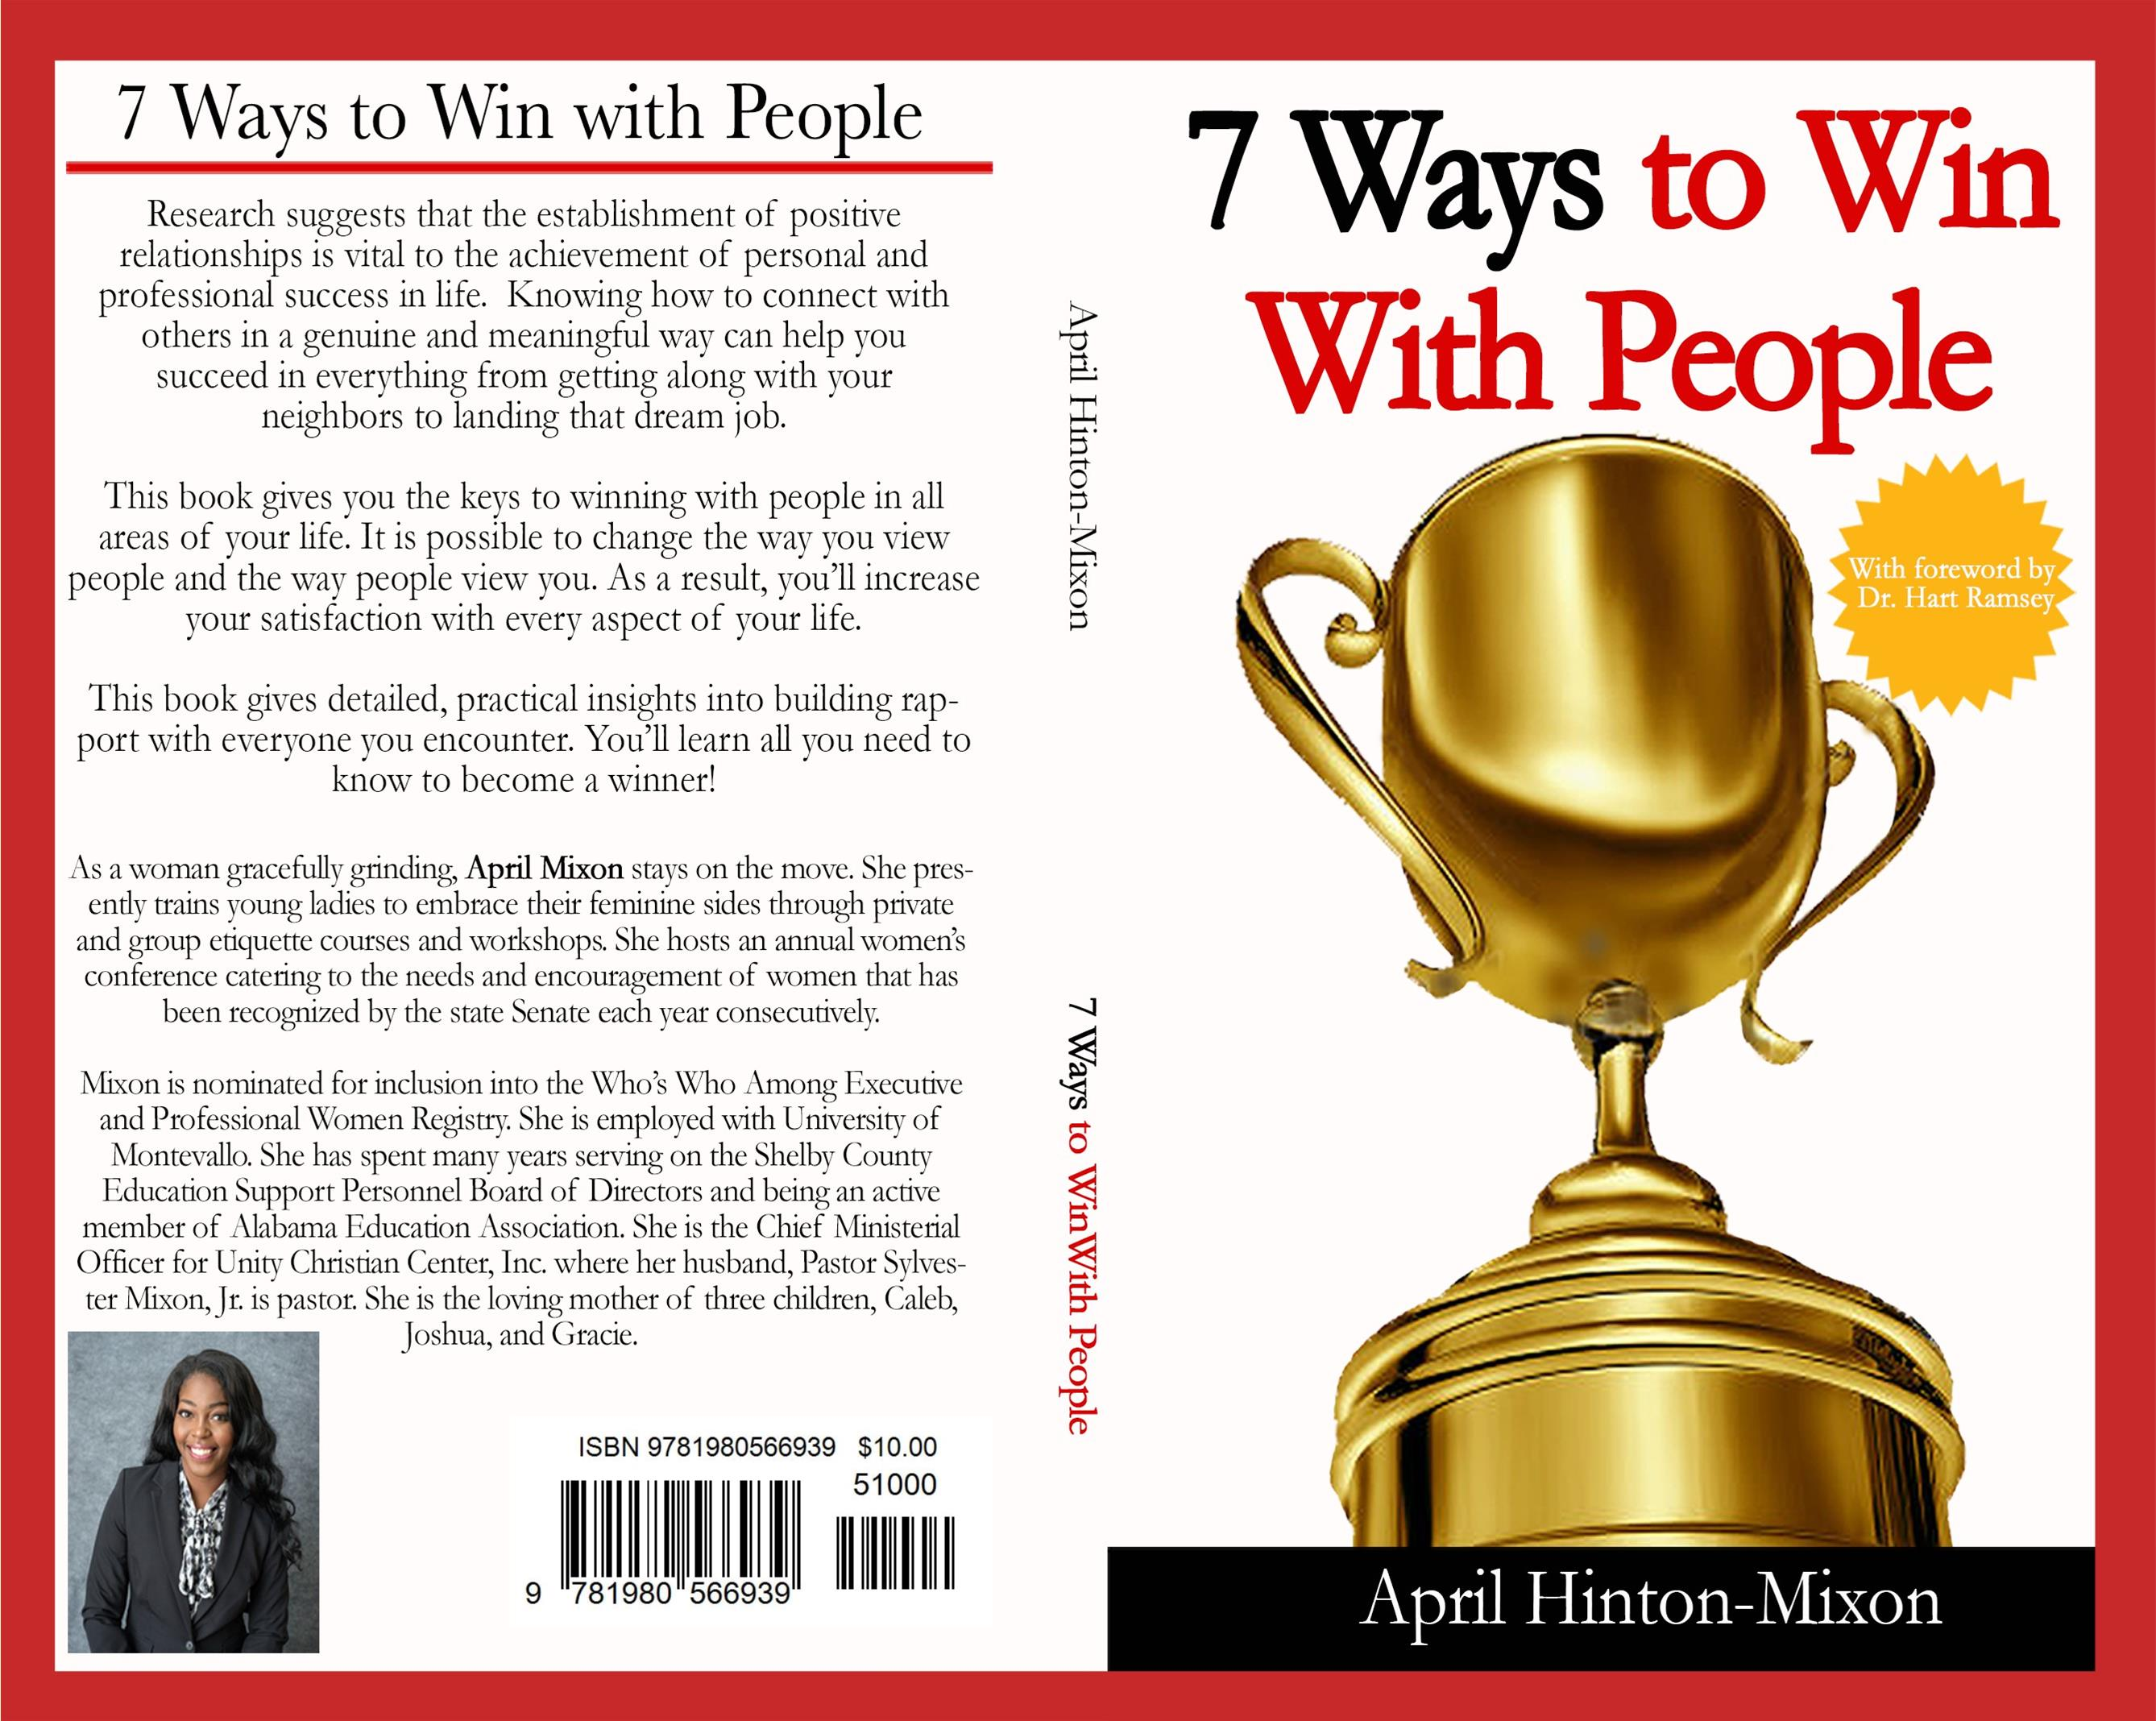 25 Ways to Win with People PDF Free download